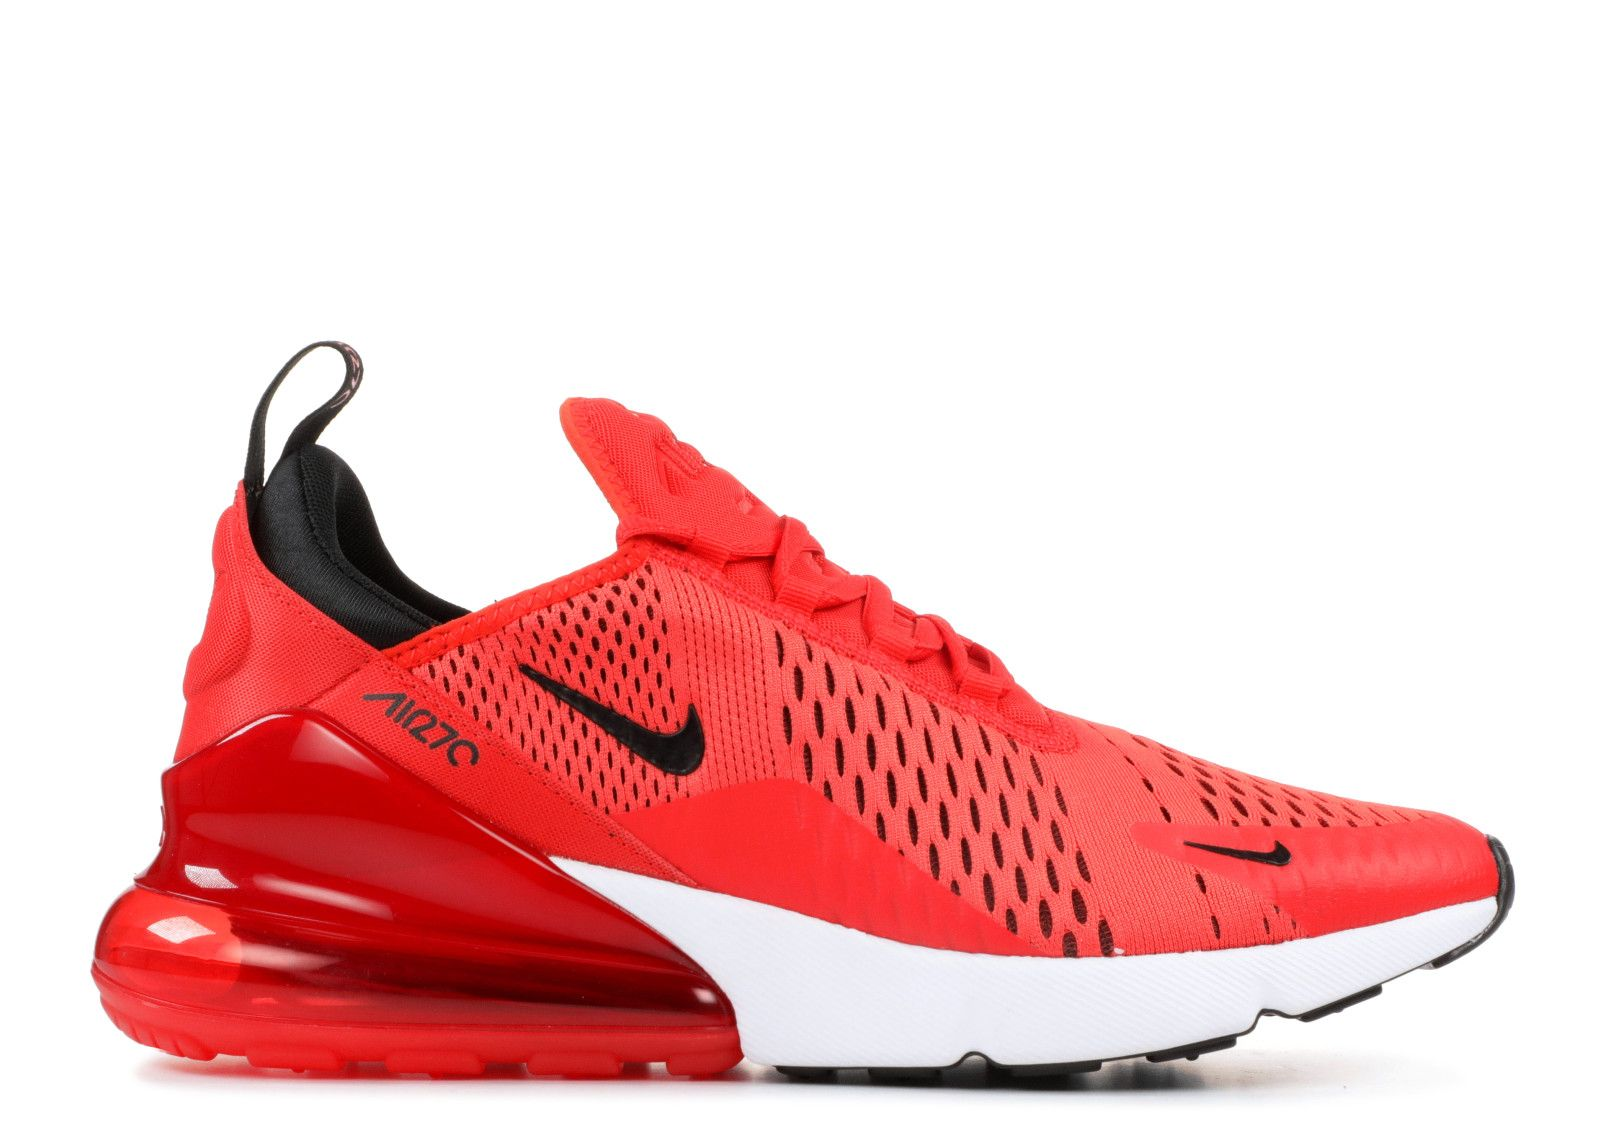 Air Max 270 Habanero Red Nike Shoes Air Max Red Nike Shoes Black Nike Shoes